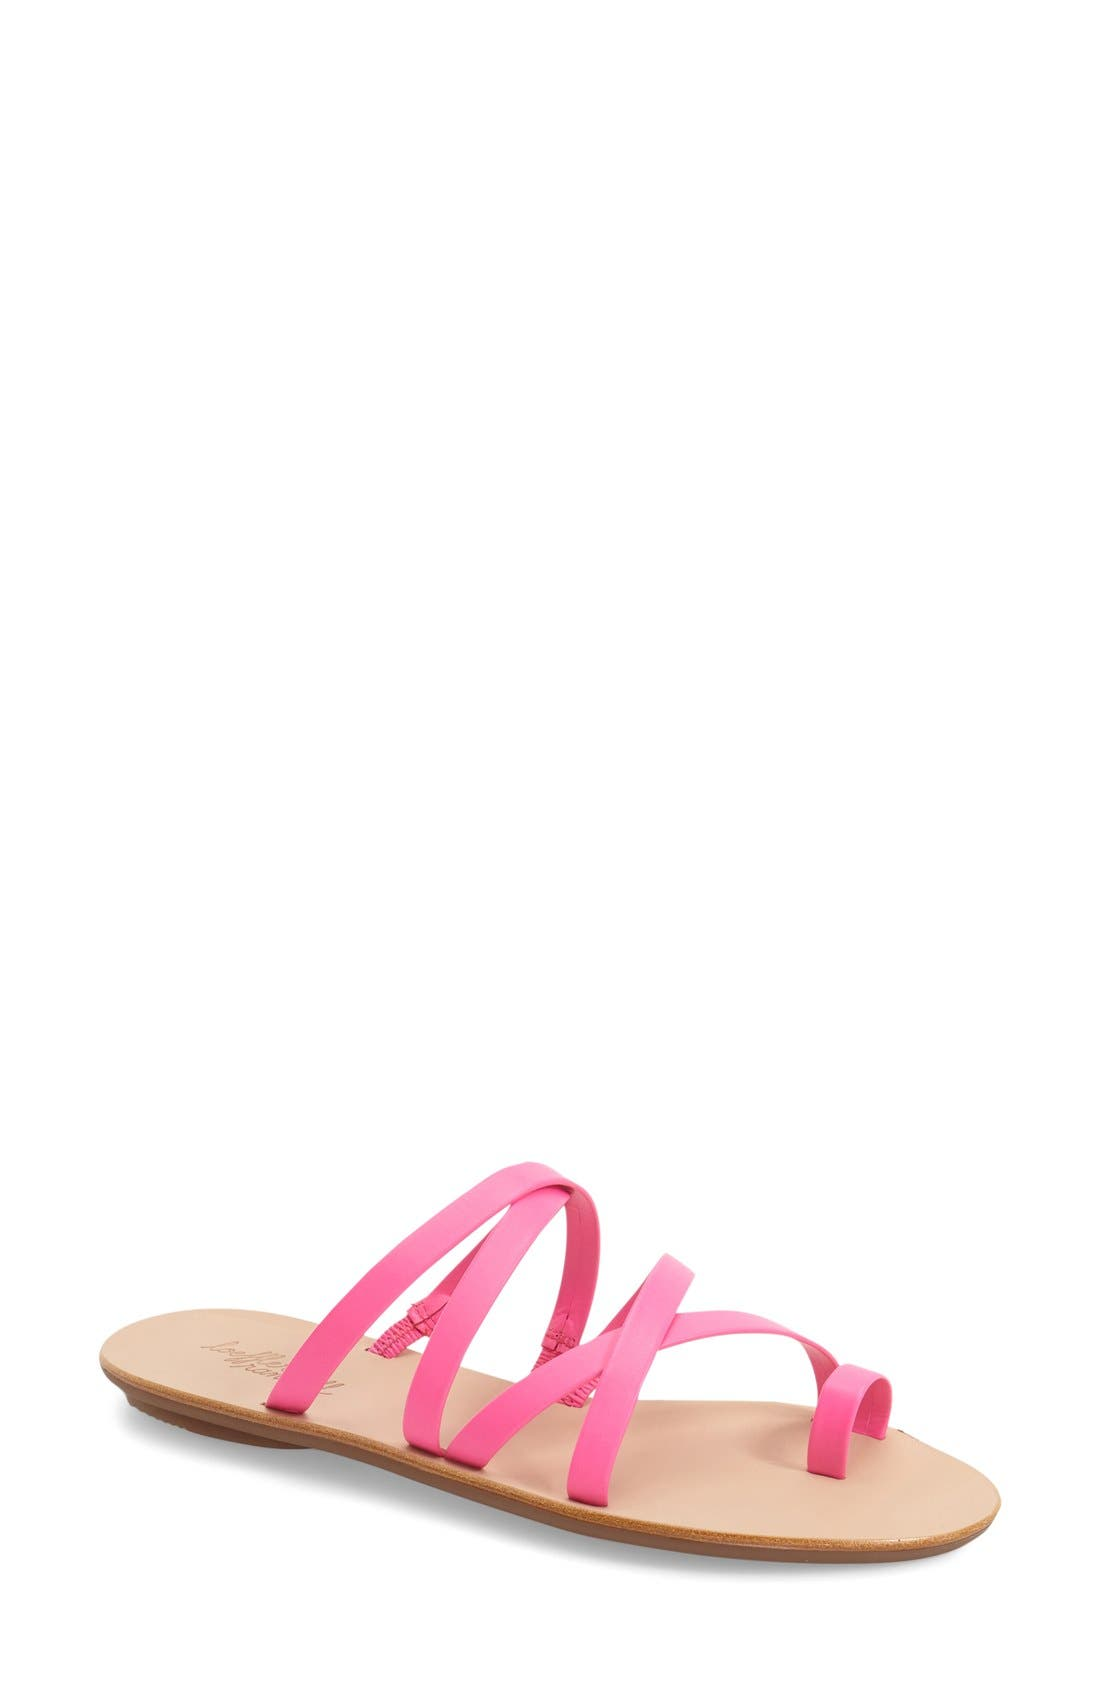 'Sarie' Strappy Flat Sandal,                             Main thumbnail 1, color,                             690